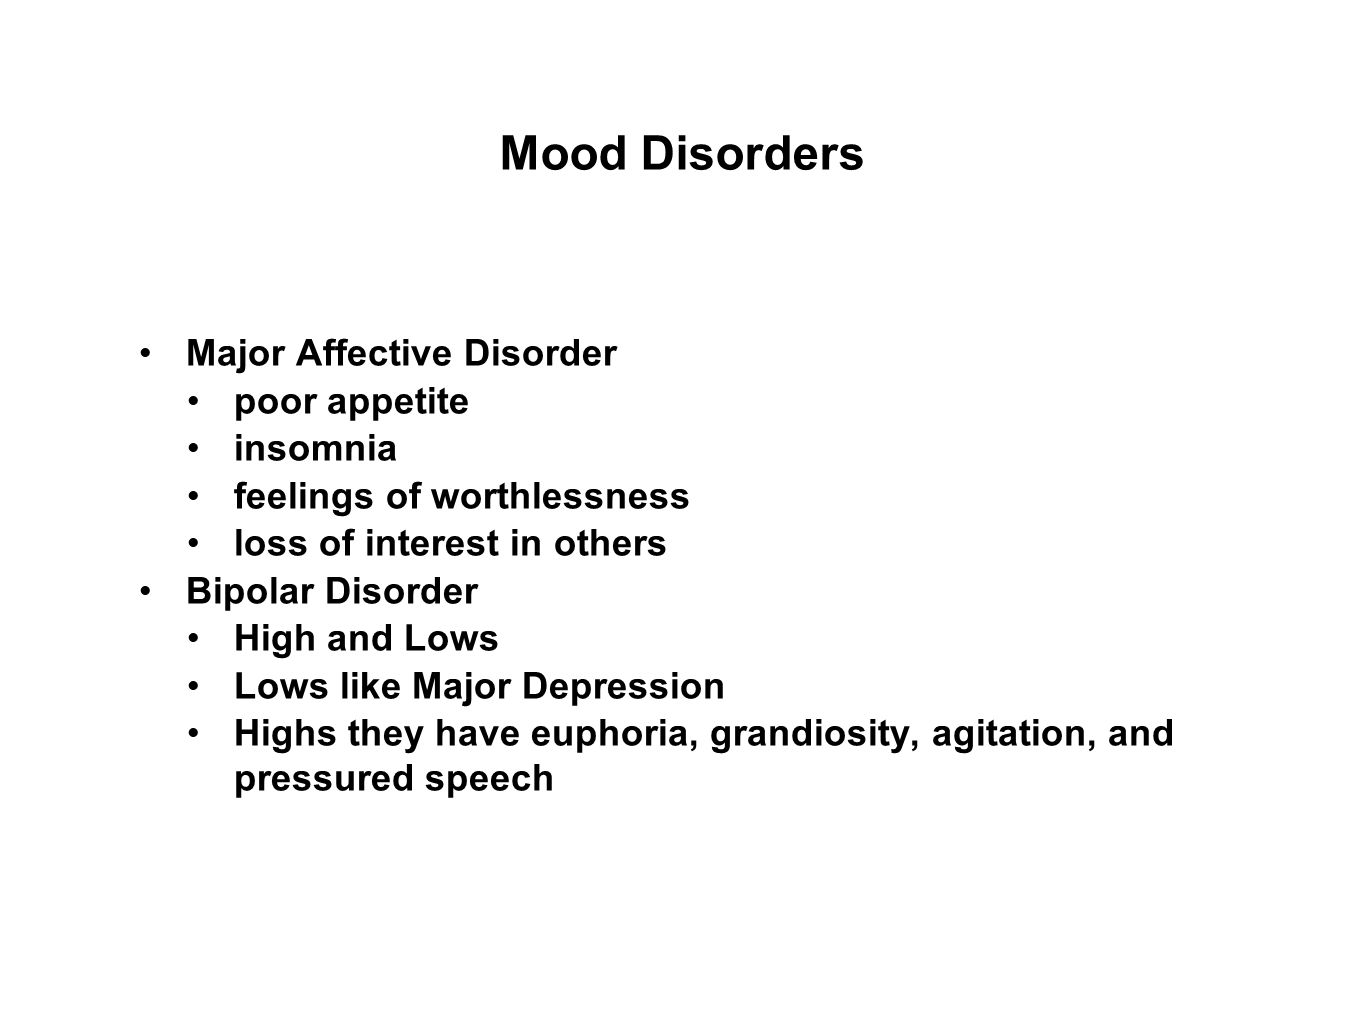 Mood Disorders Major Affective Disorder poor appetite insomnia feelings of worthlessness loss of interest in others Bipolar Disorder High and Lows Low